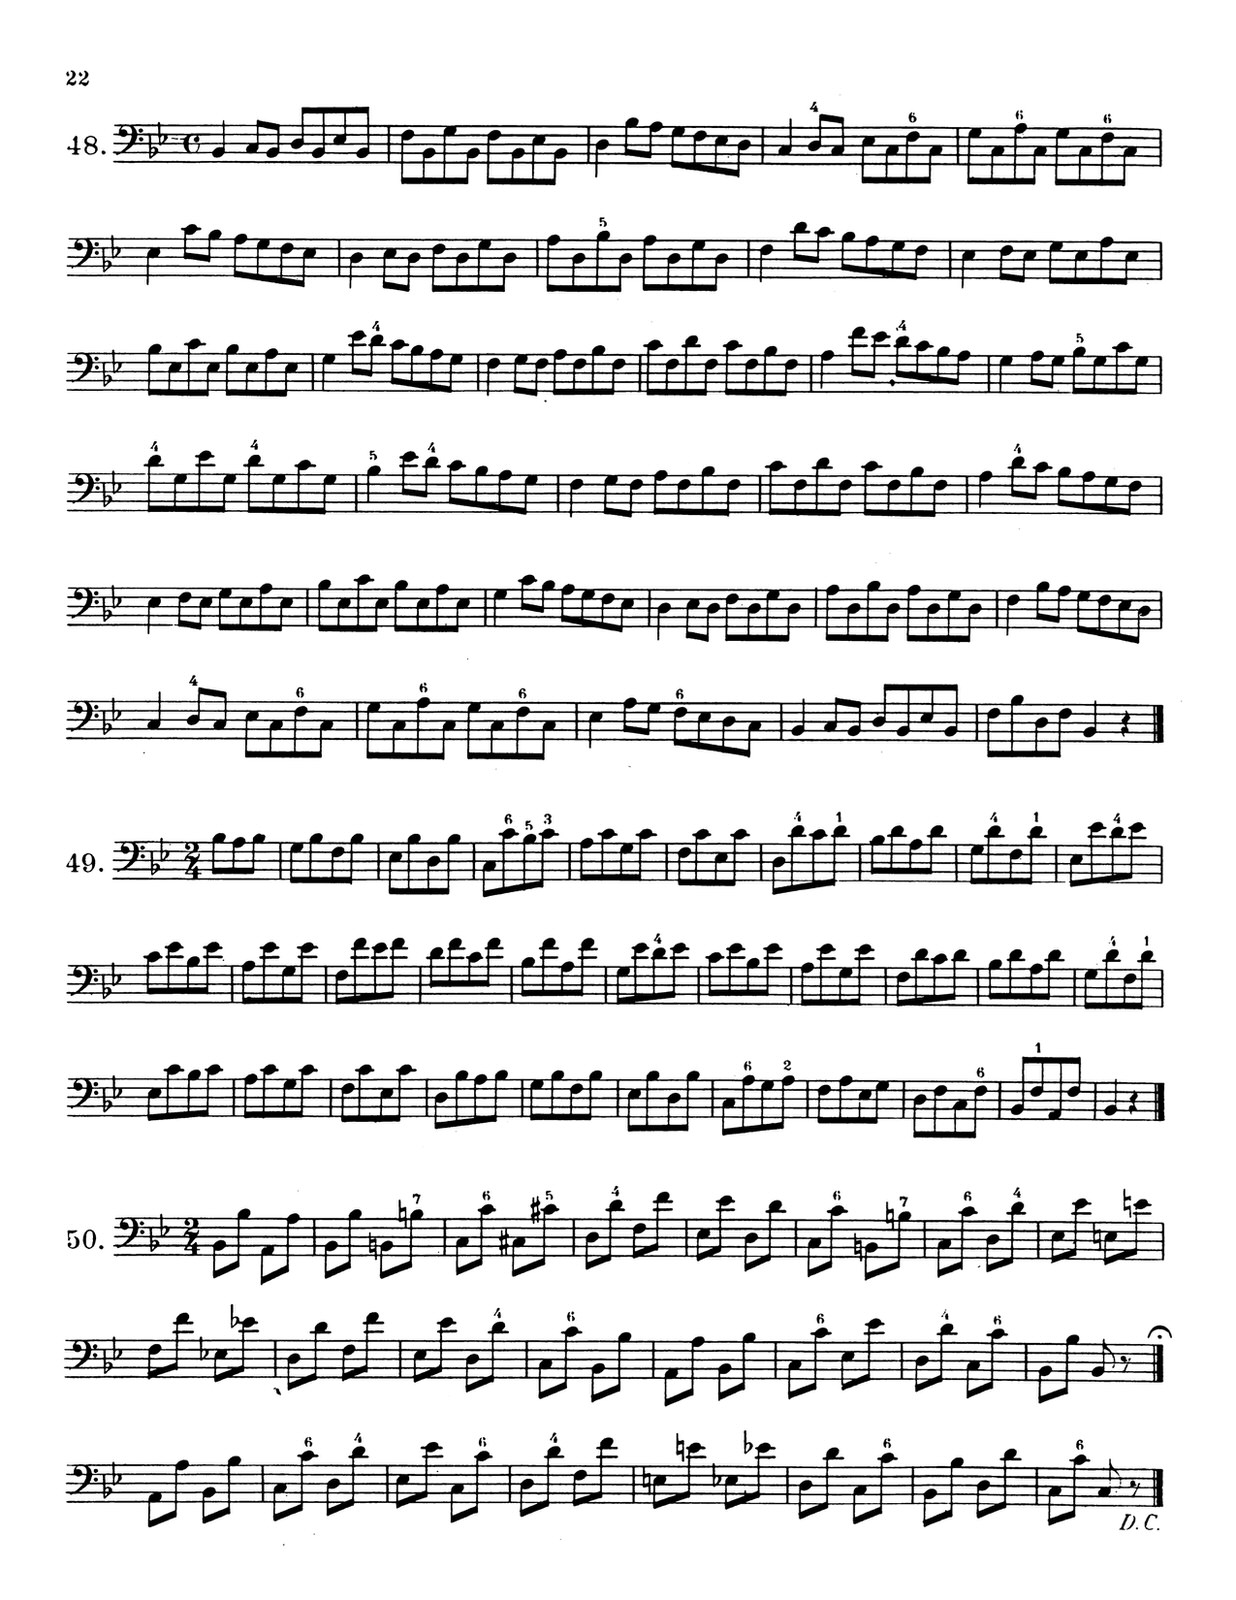 Eby, Arban's Method in Bass Clef for Trombone Complete 5